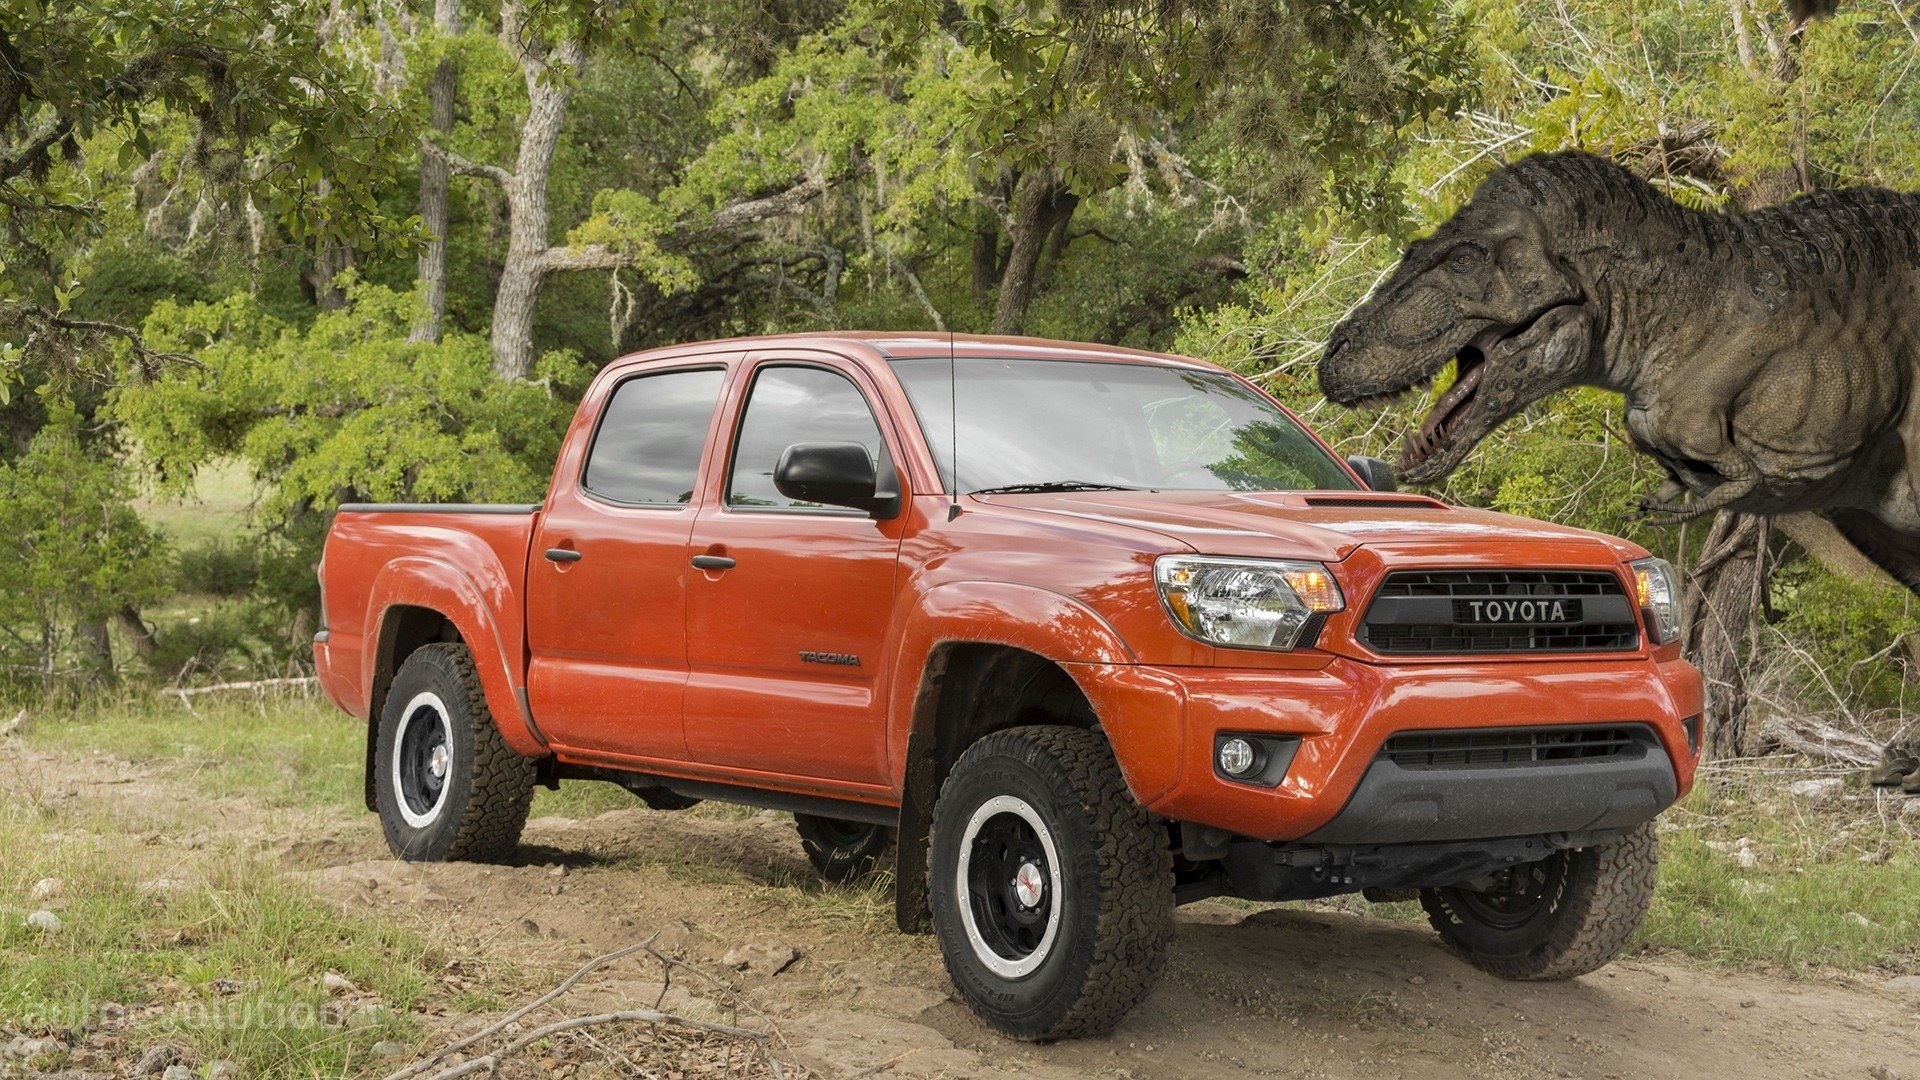 2015 Toyota Tacoma TRD Pro HD Wallpapers Conquering Jurassic World 1920x1080